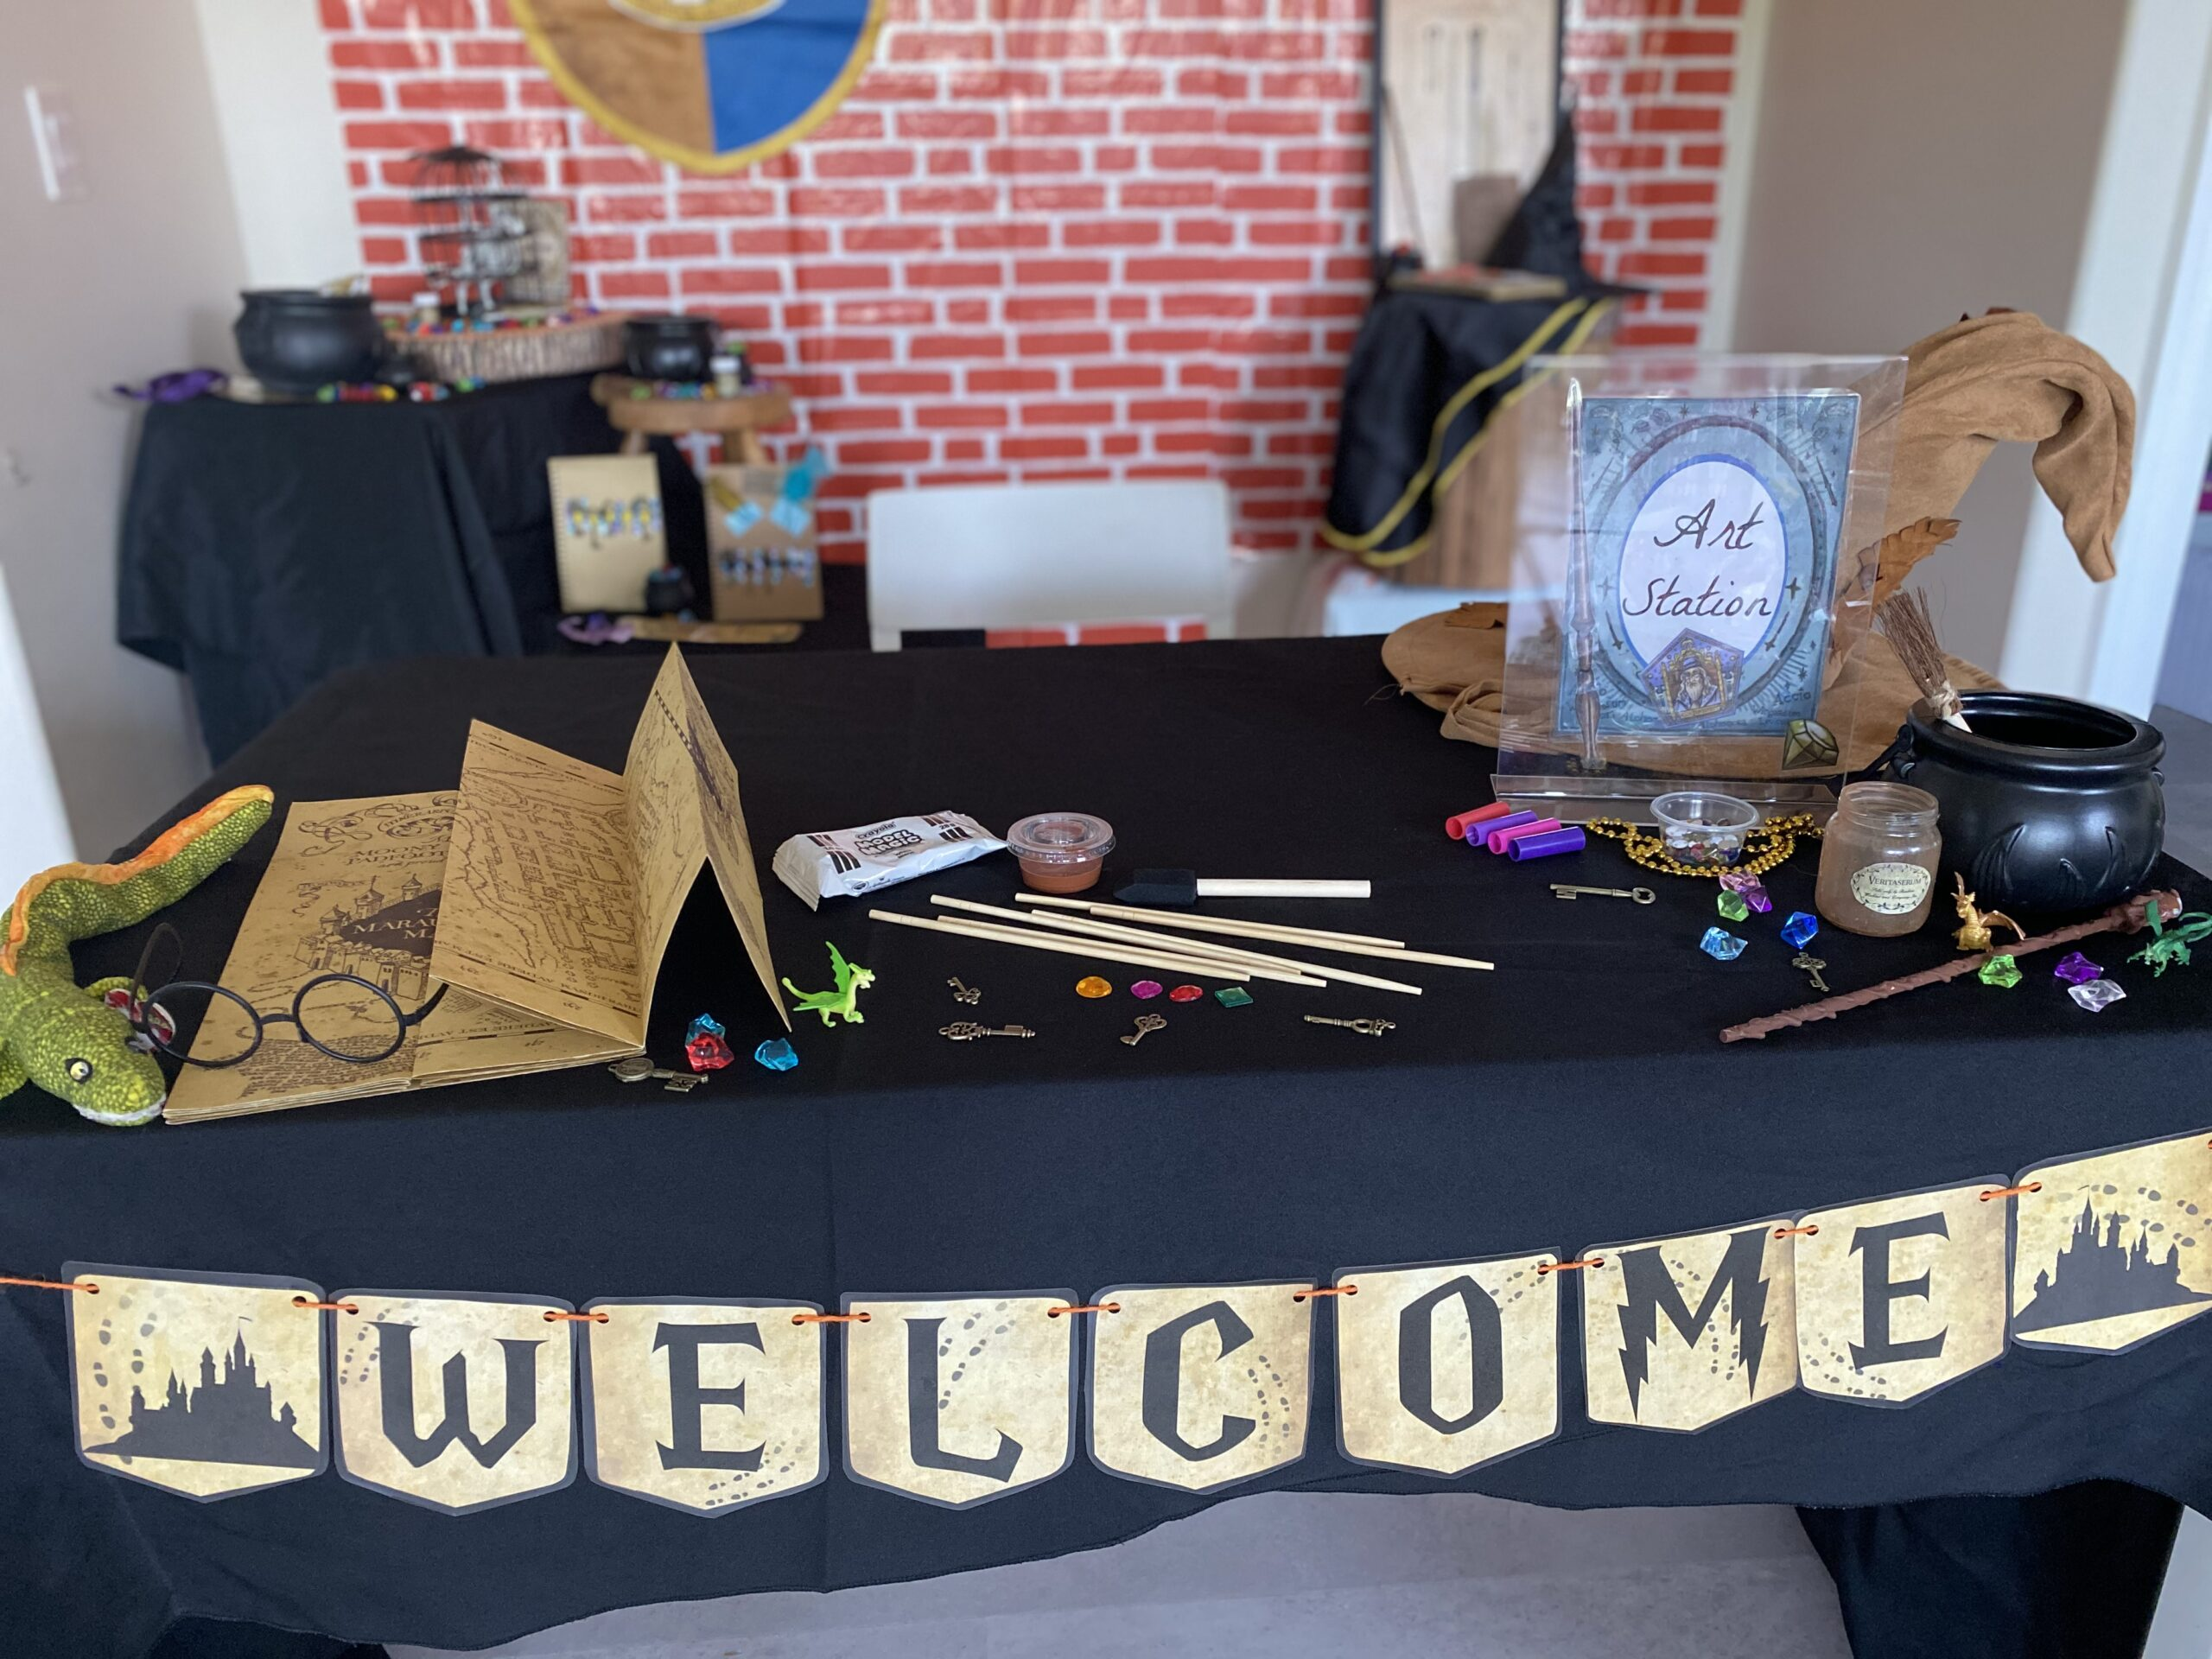 Wizardly Wonders summer camp: Come explore these simple and fun activities exploring creativity and pretend play.